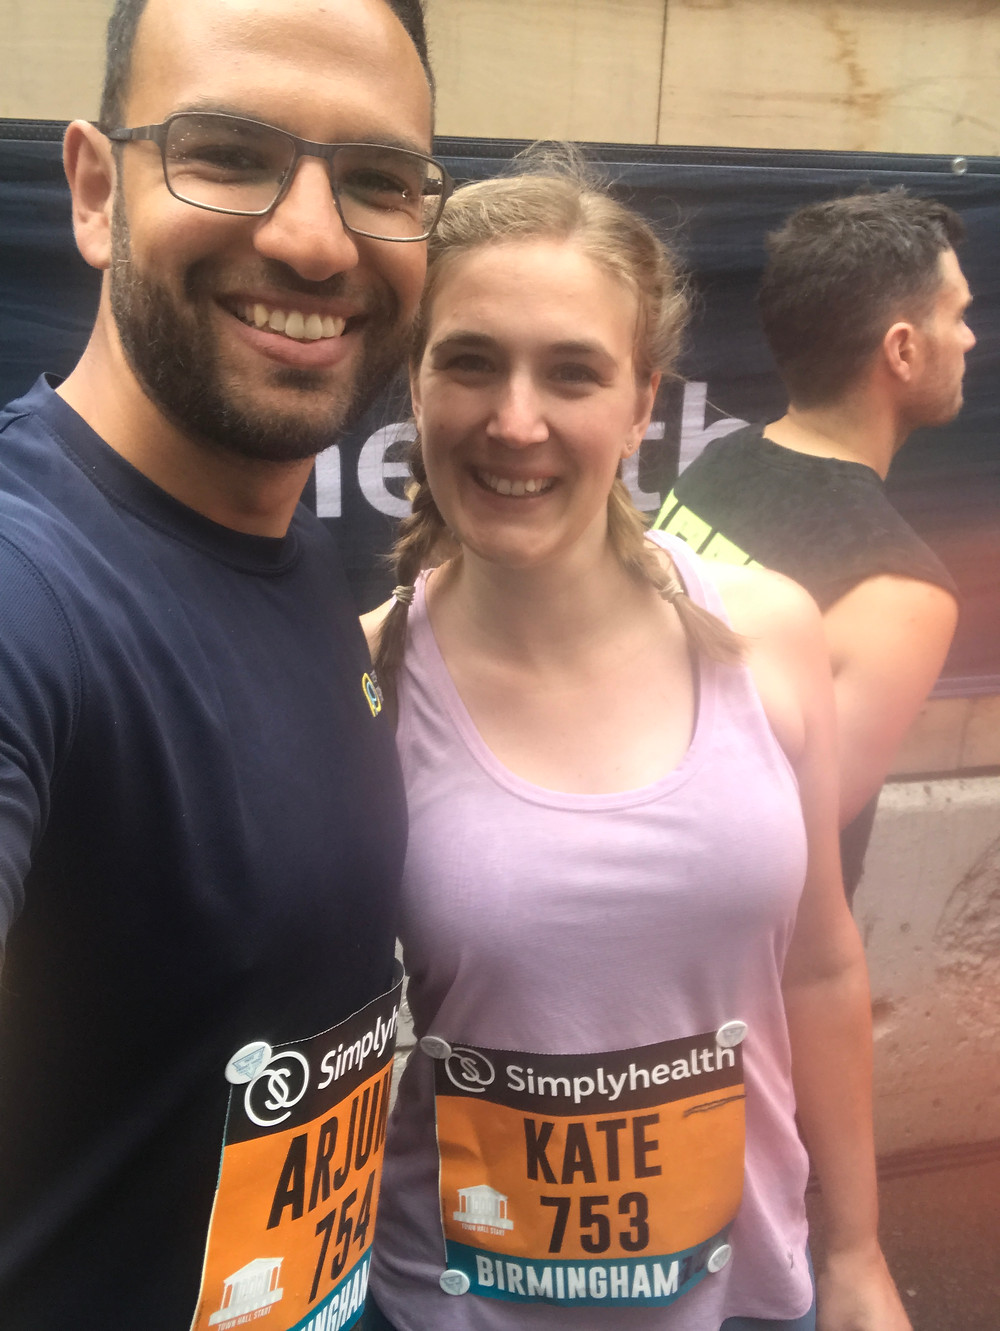 Arj and Kate on the start line of the Great Run Birmingham 10K